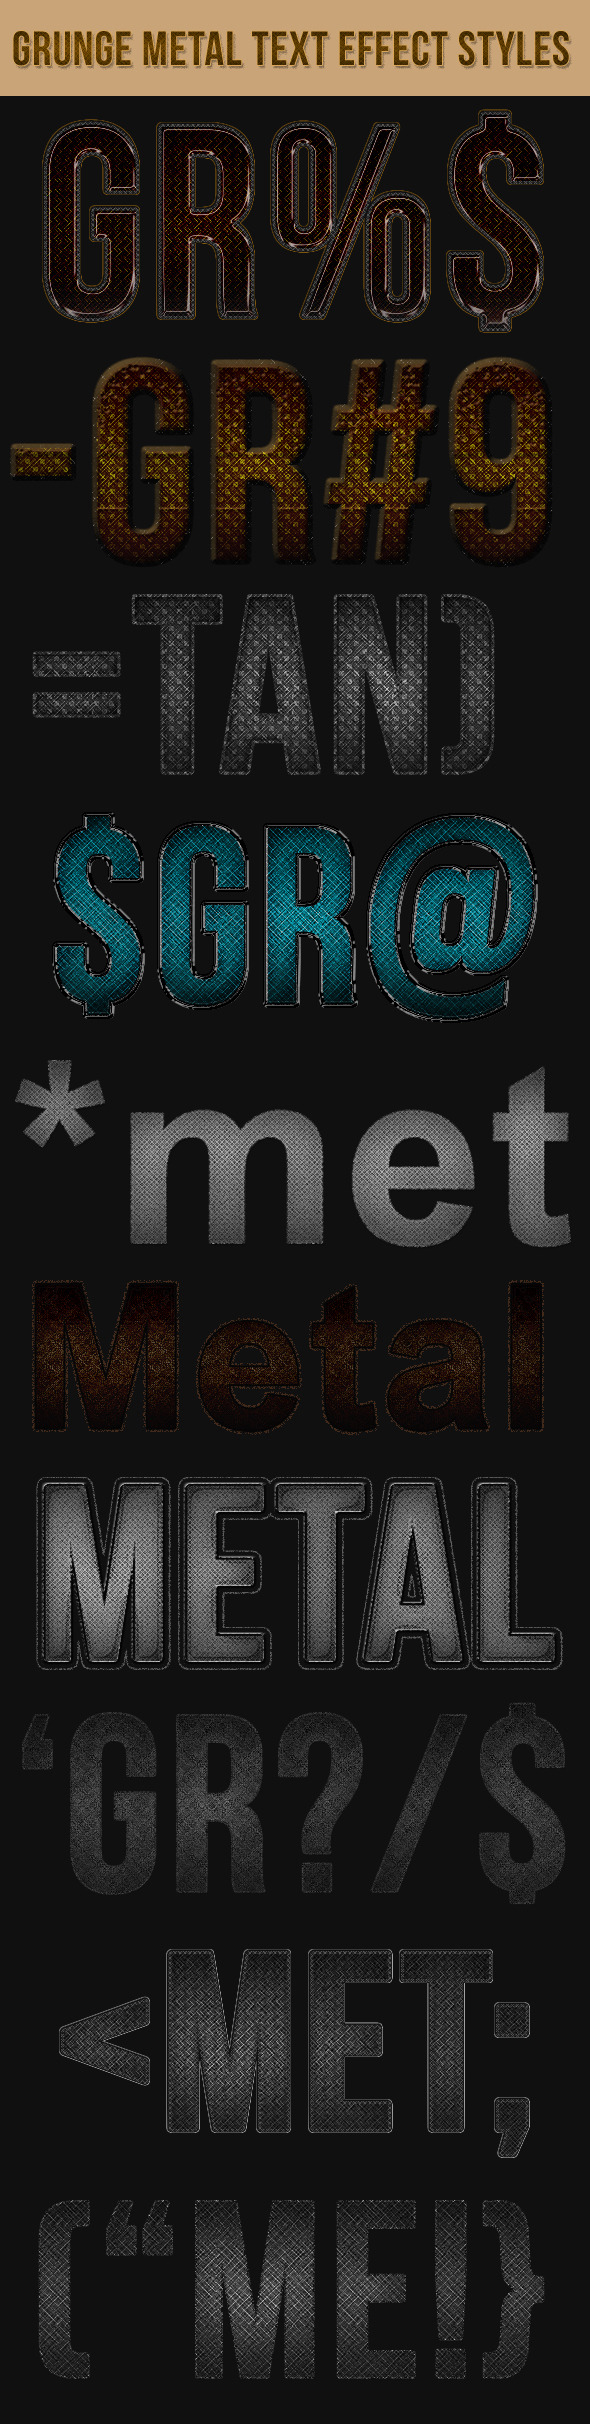 Grunge Metal Text Effect Styles - Text Effects Styles